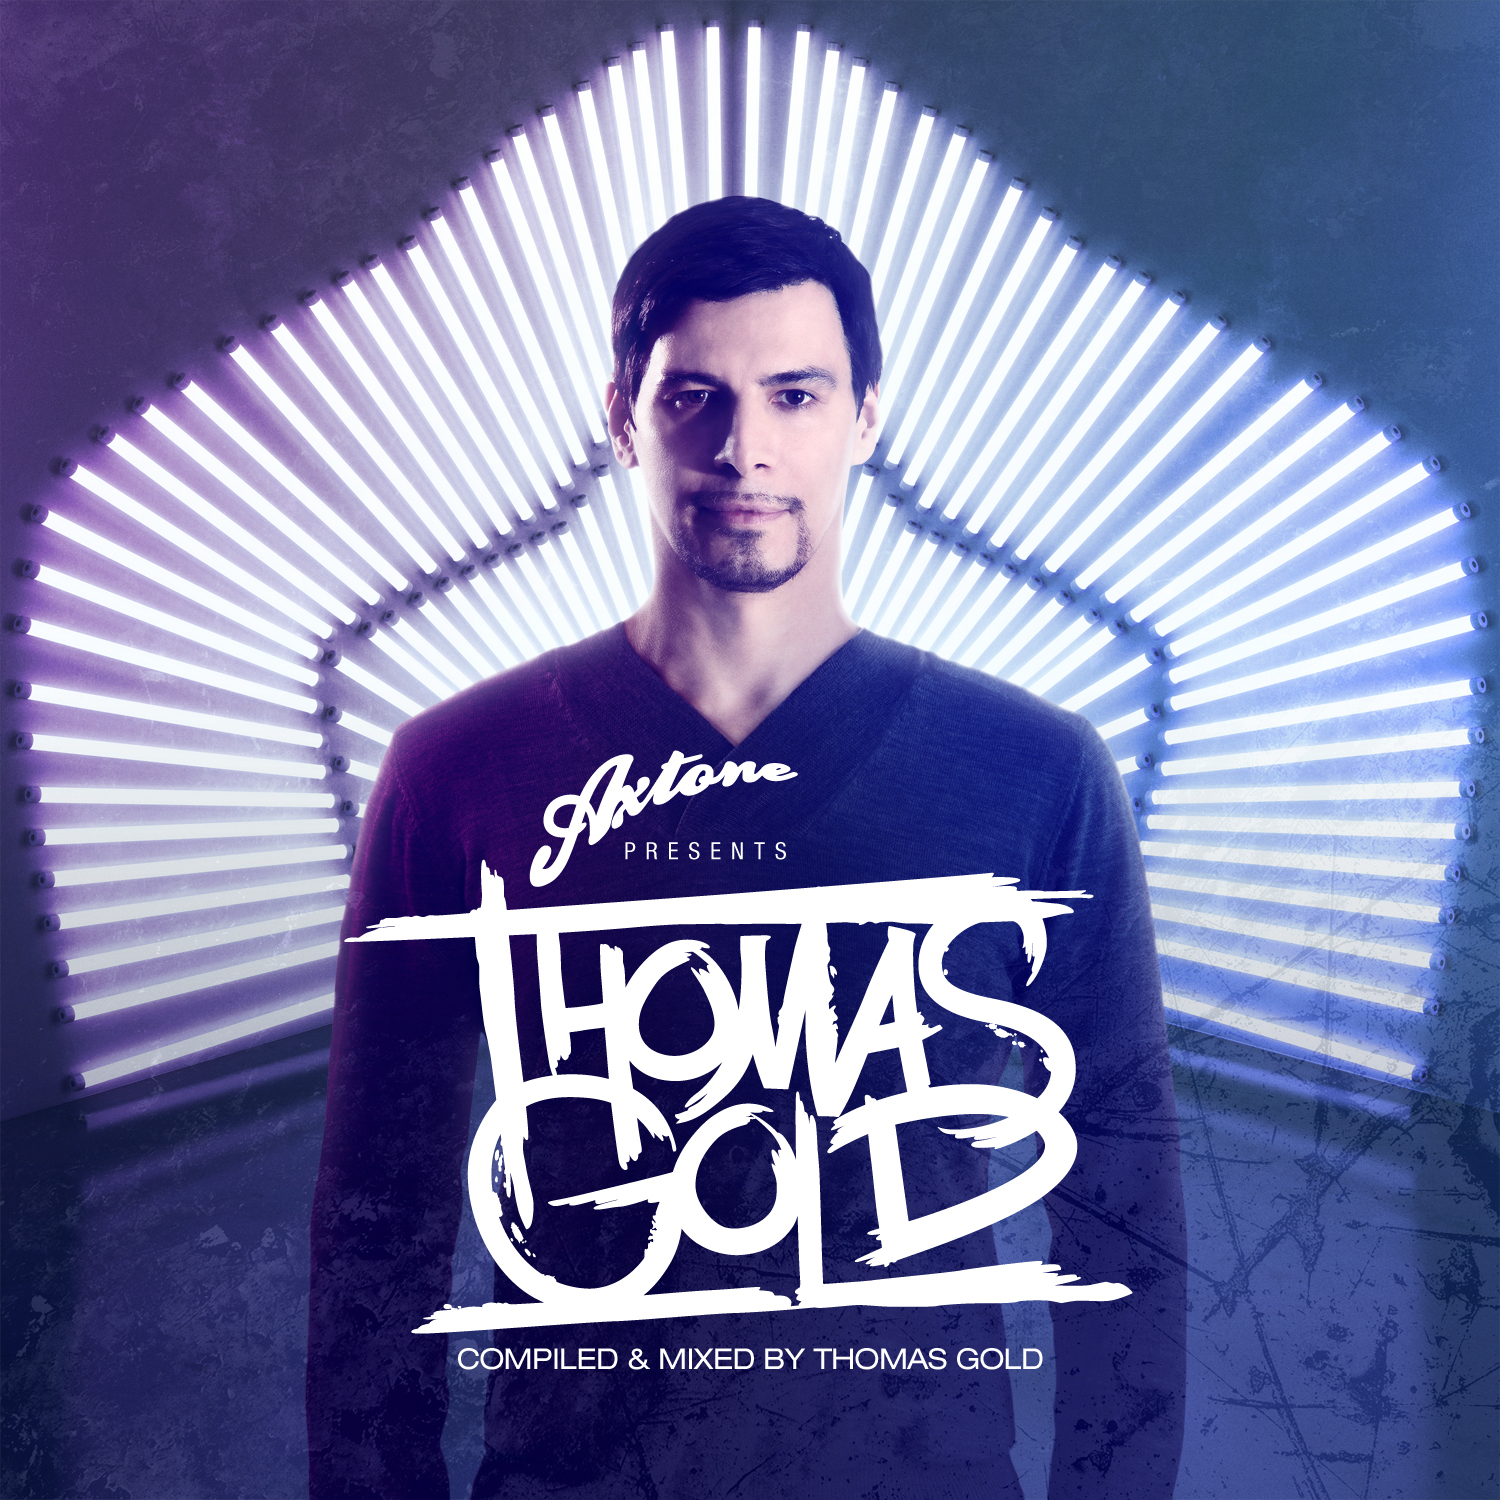 TG Compilation Axtone Presents Thomas Gold Debut Compilation